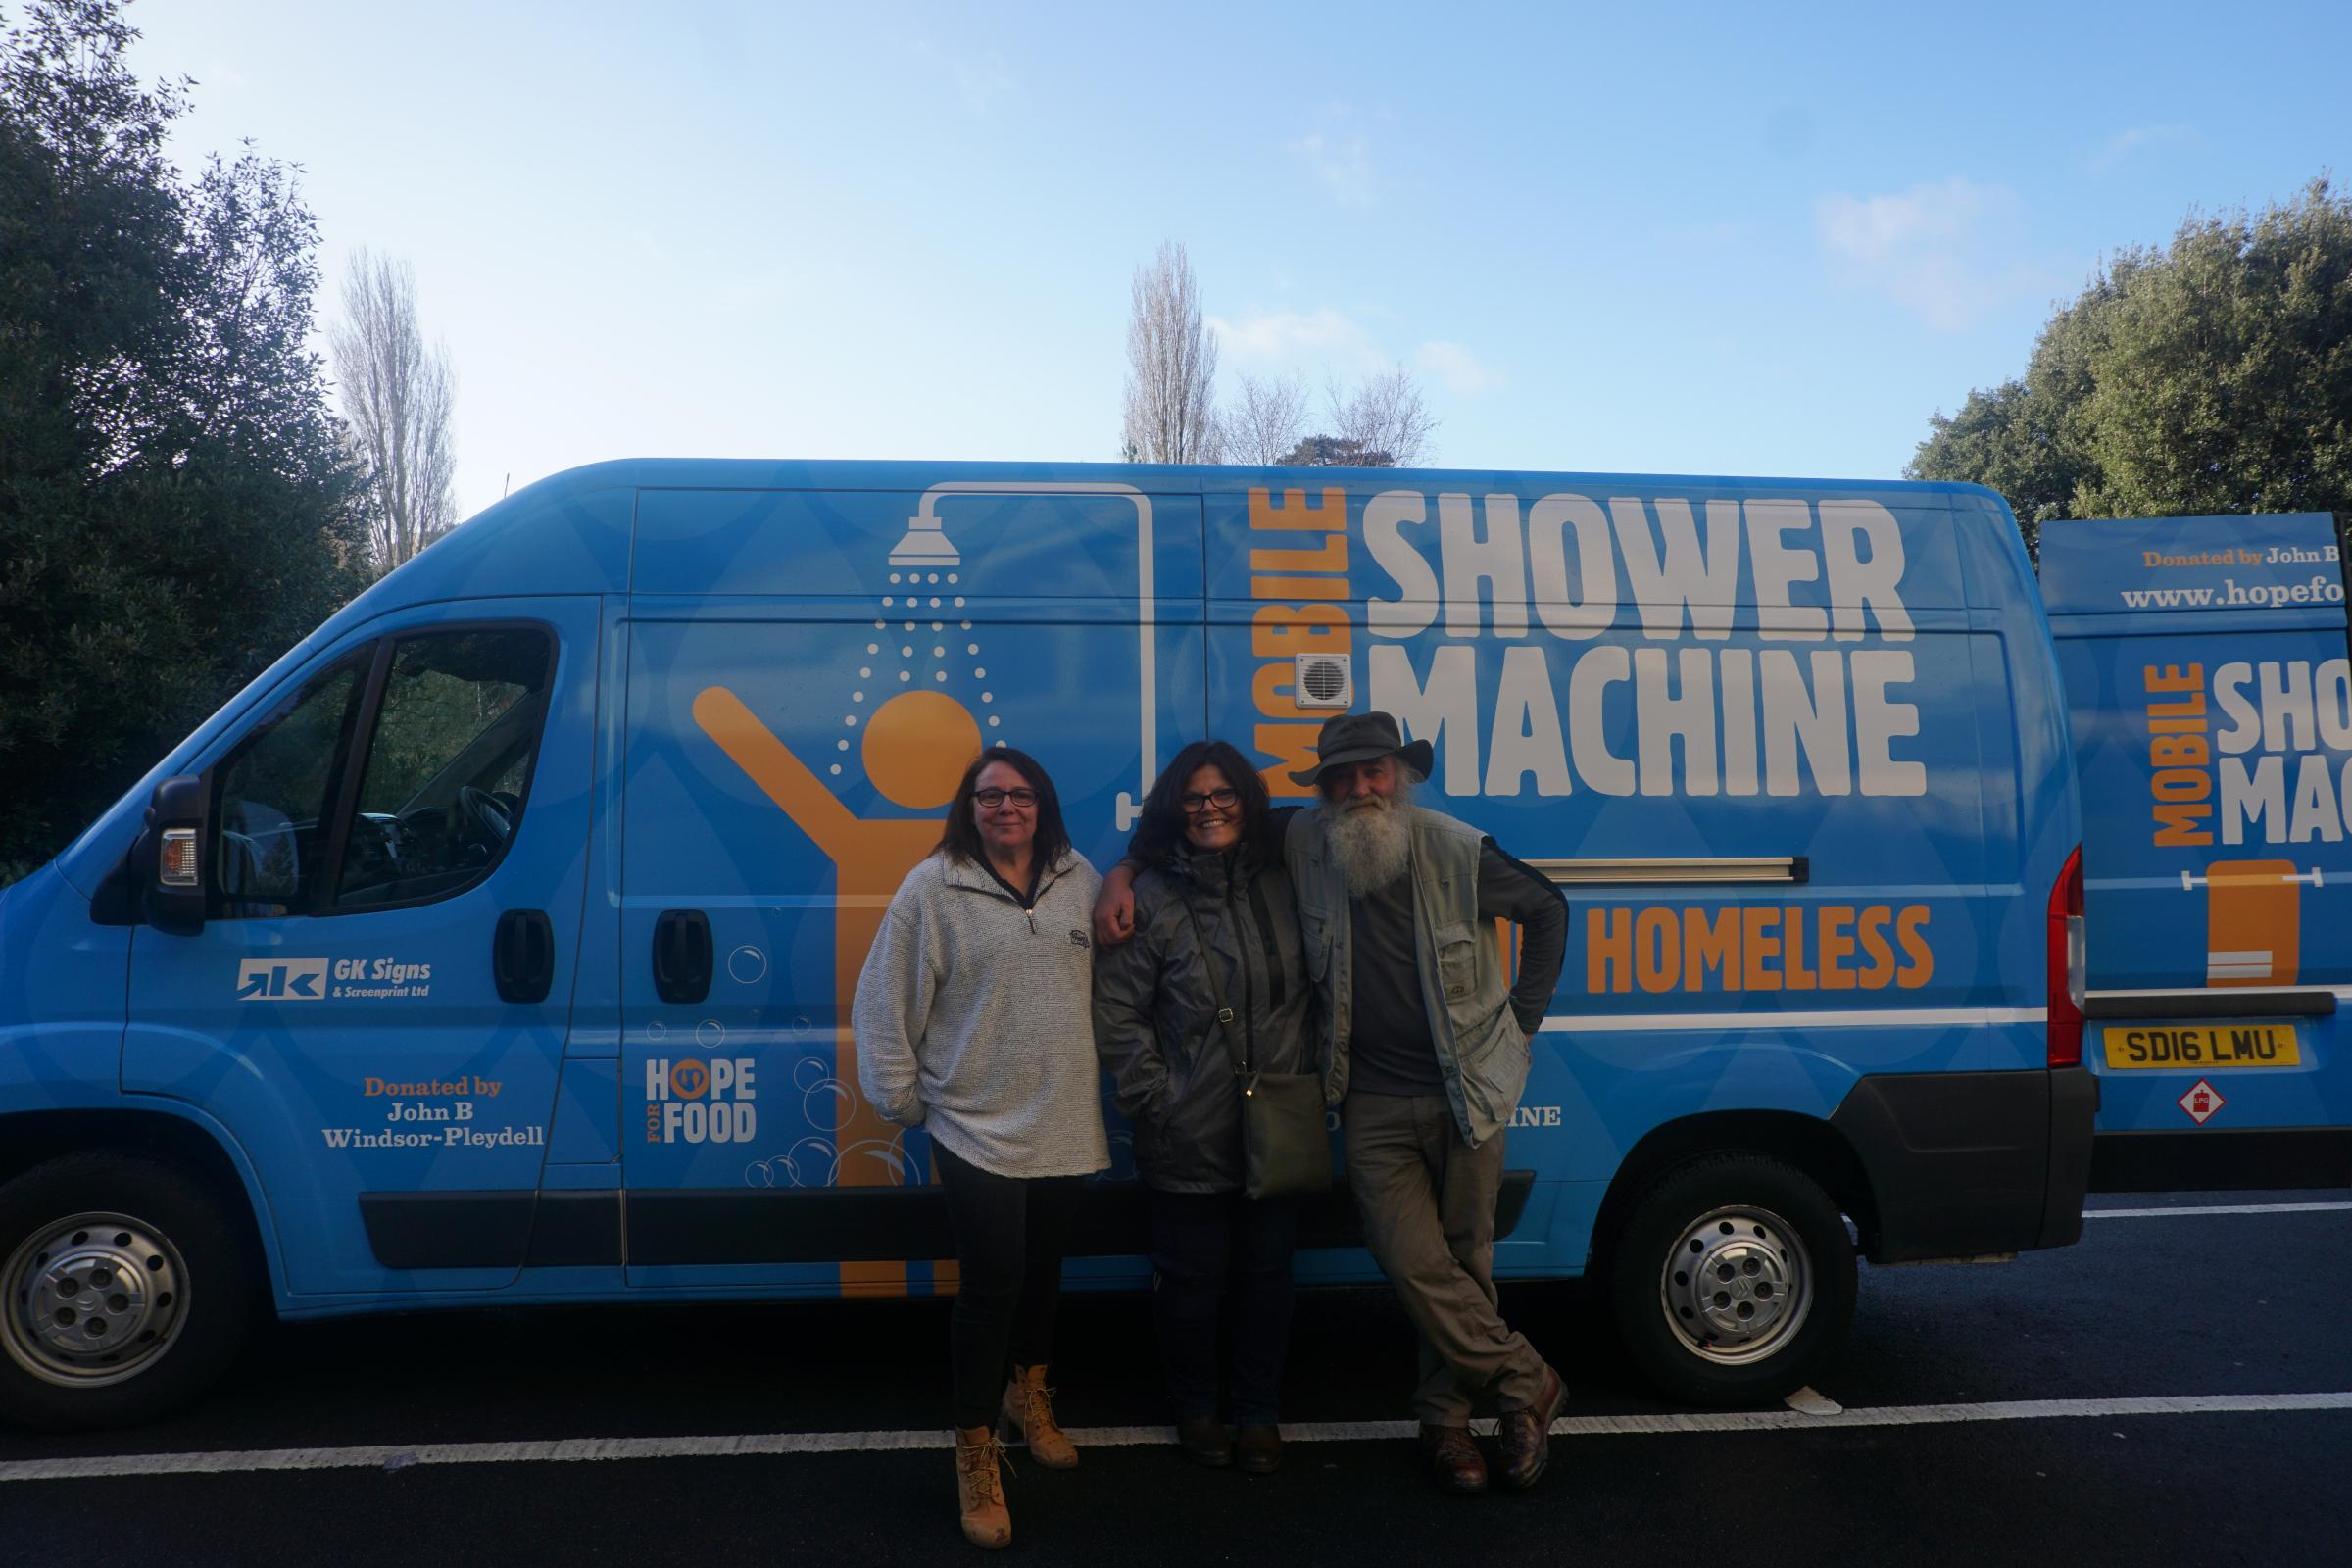 'The Shower Machine' will enable homeless people to wash while they clean their clothes. Credit: Bournemouth Echo